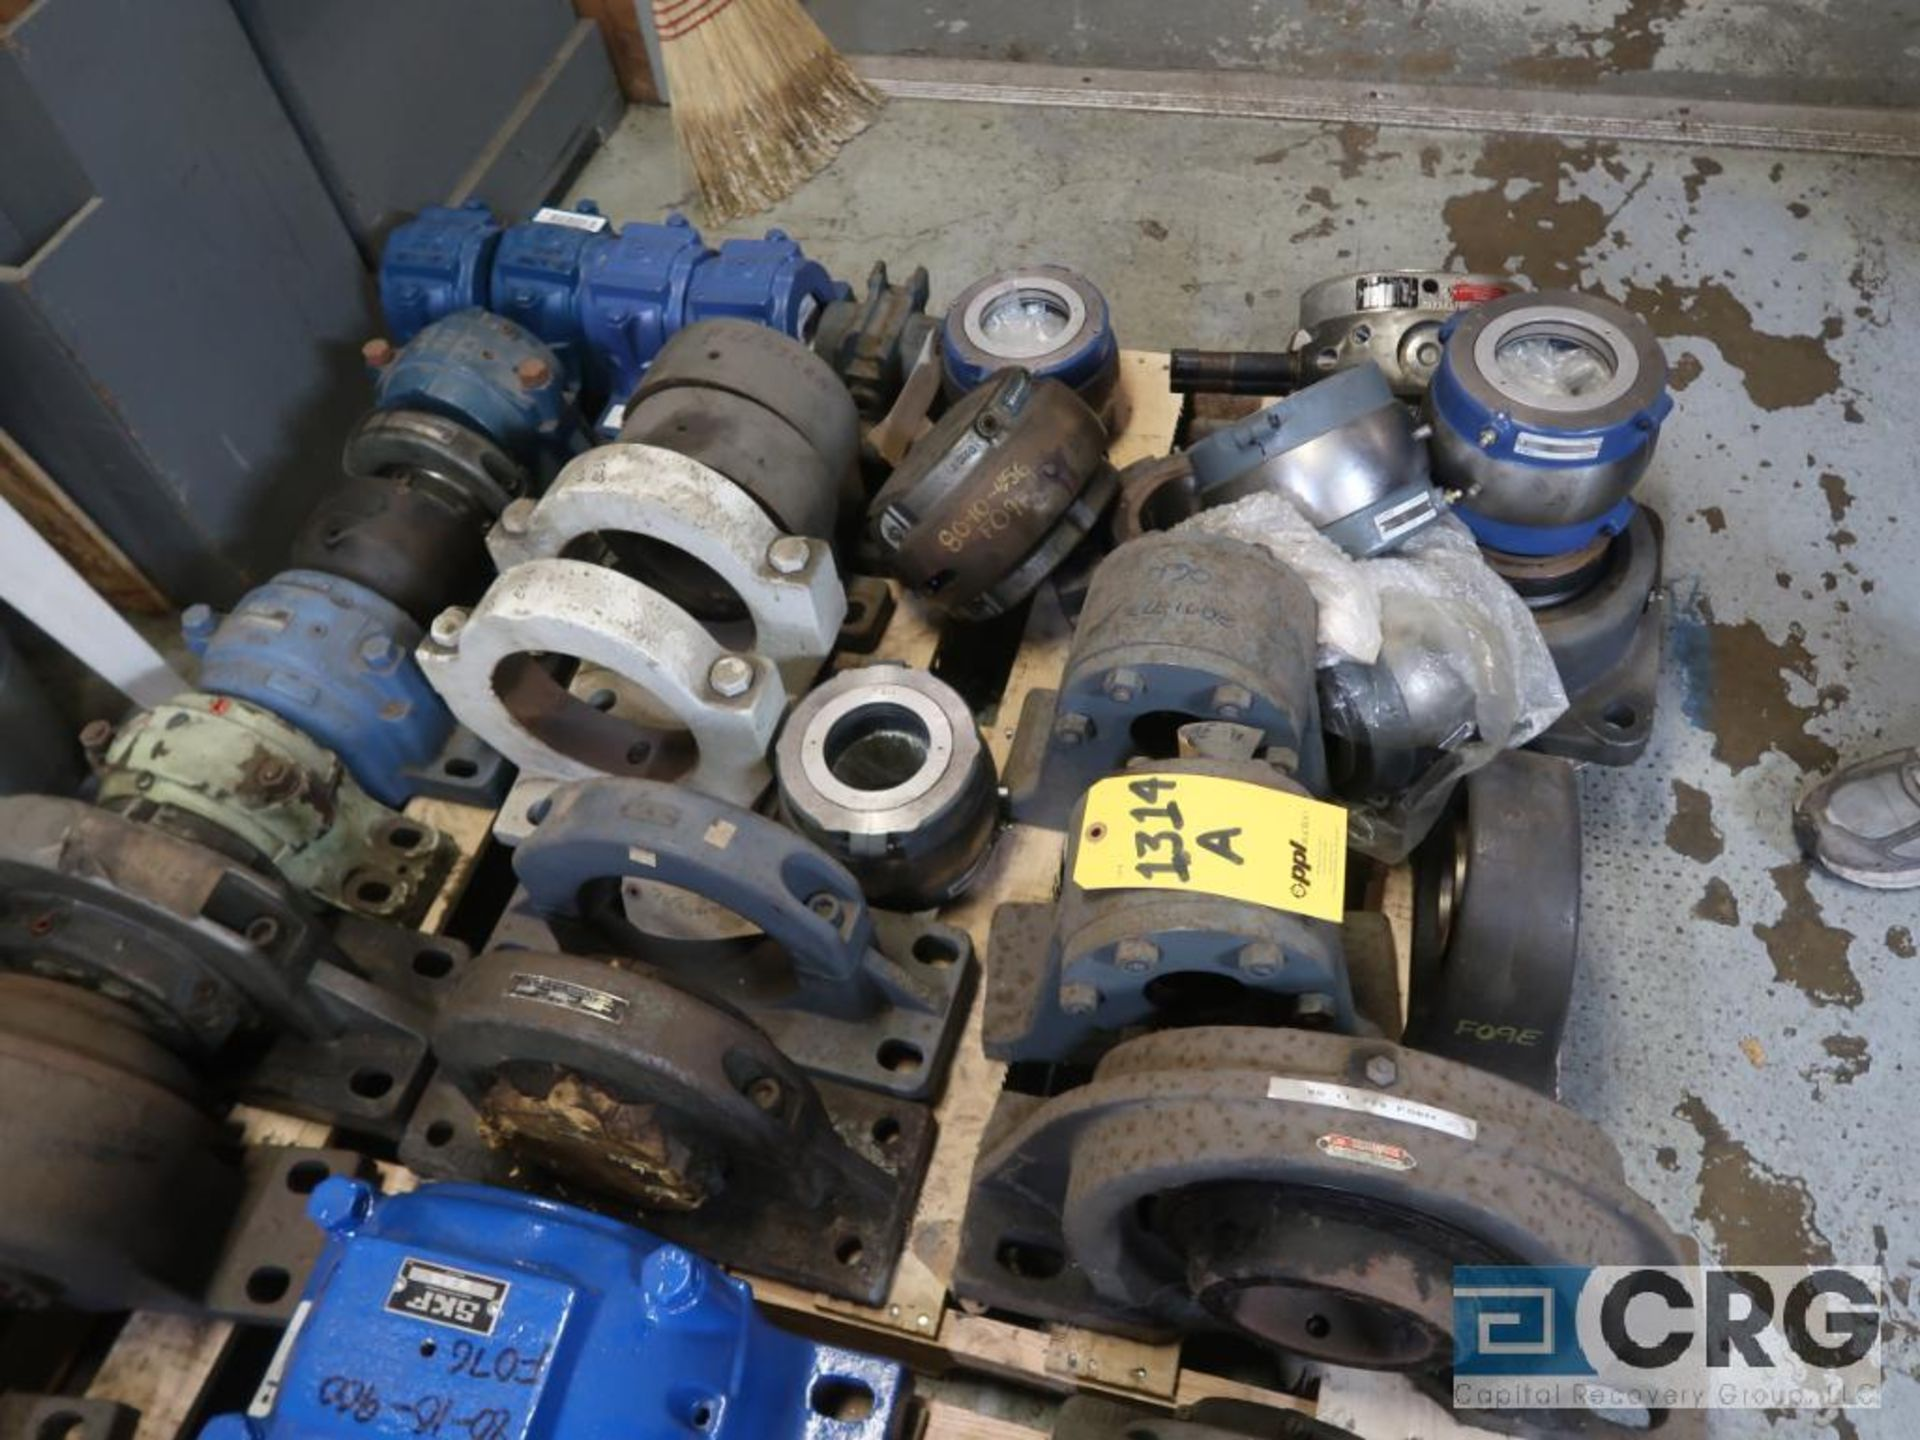 Lot of assorted large bearings and pillow blocks on (6) pallets (Basement Store) - Image 4 of 8